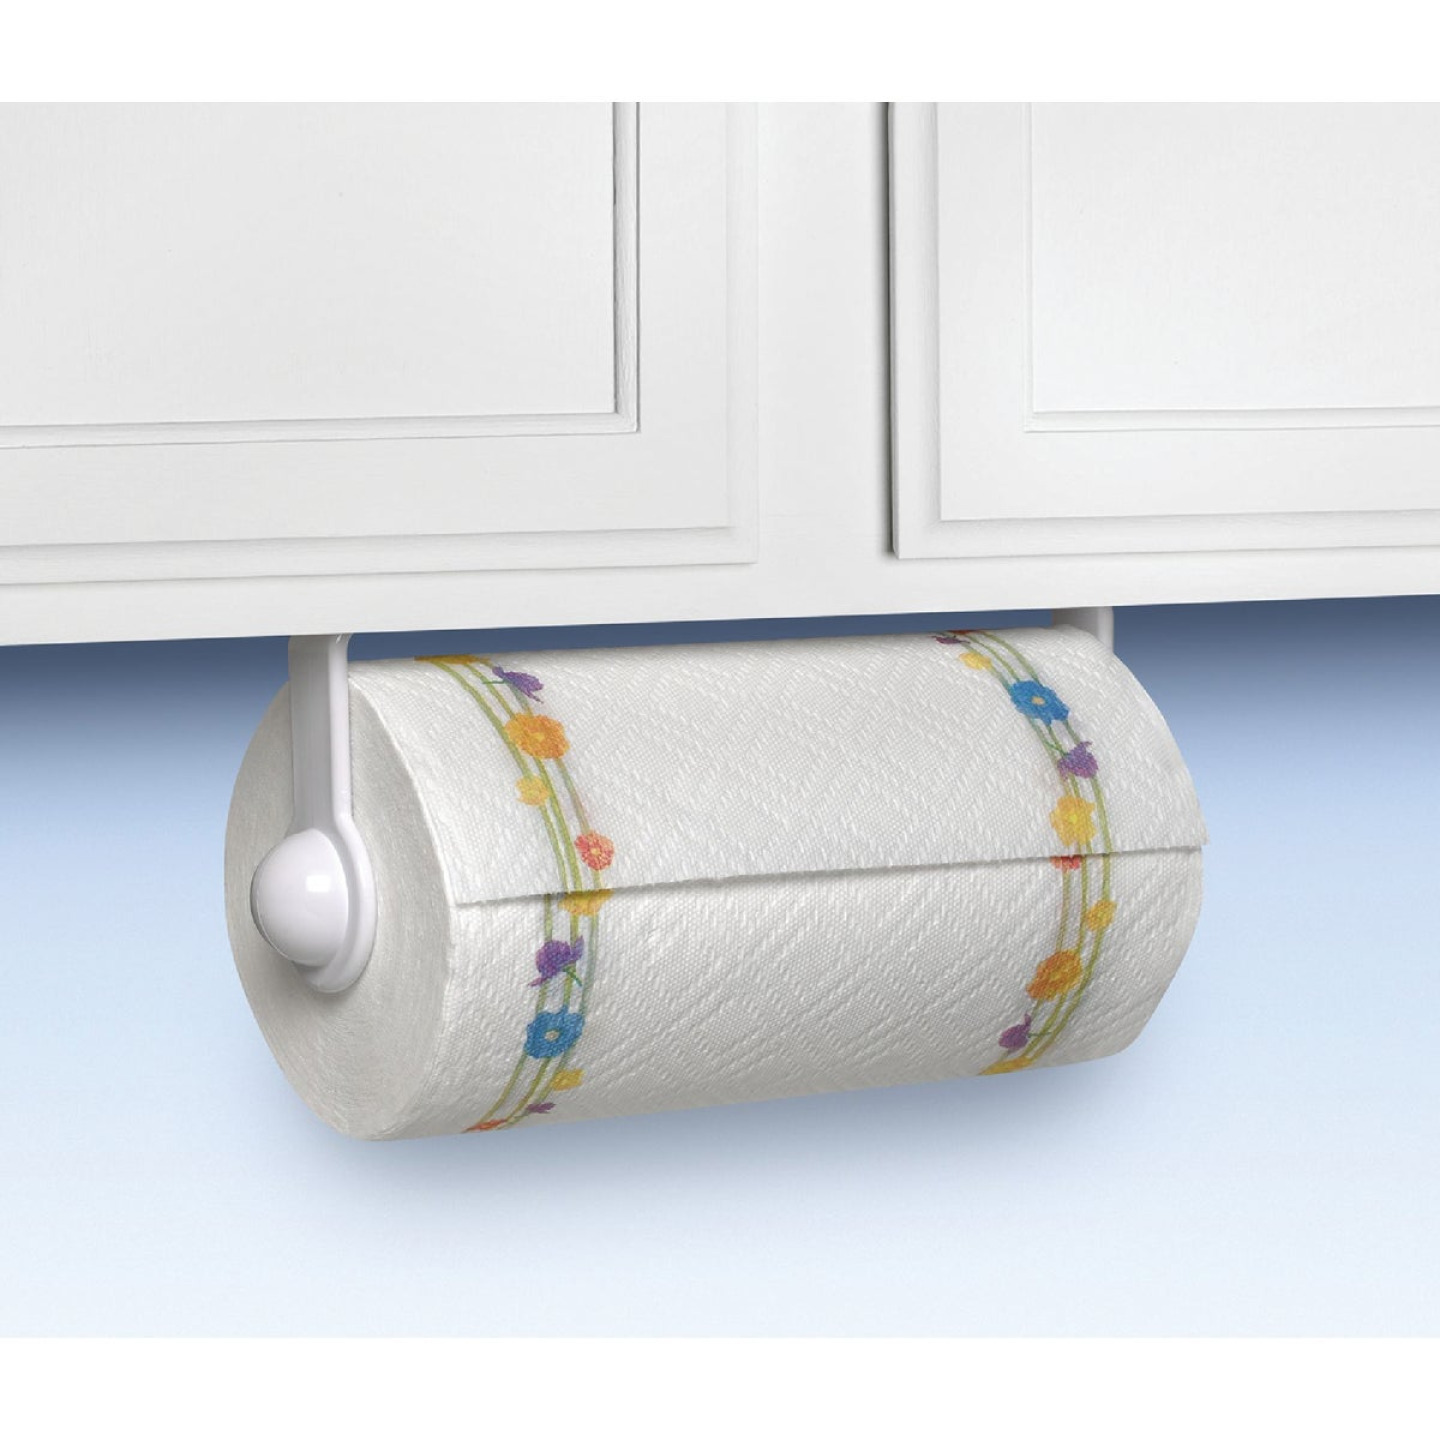 Spectrum Plastic Paper Towel Holder Image 1